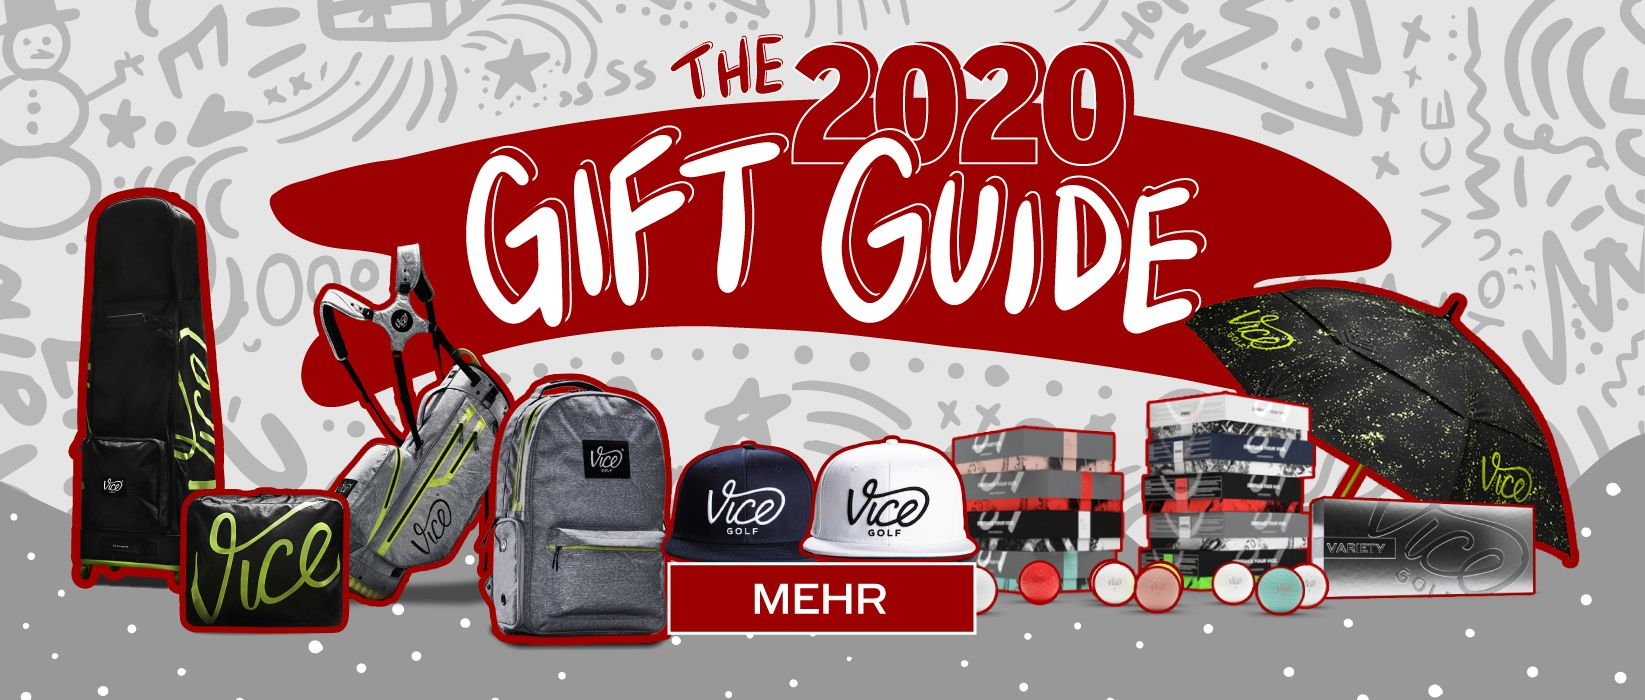 href='vice-golf-gift-guide'